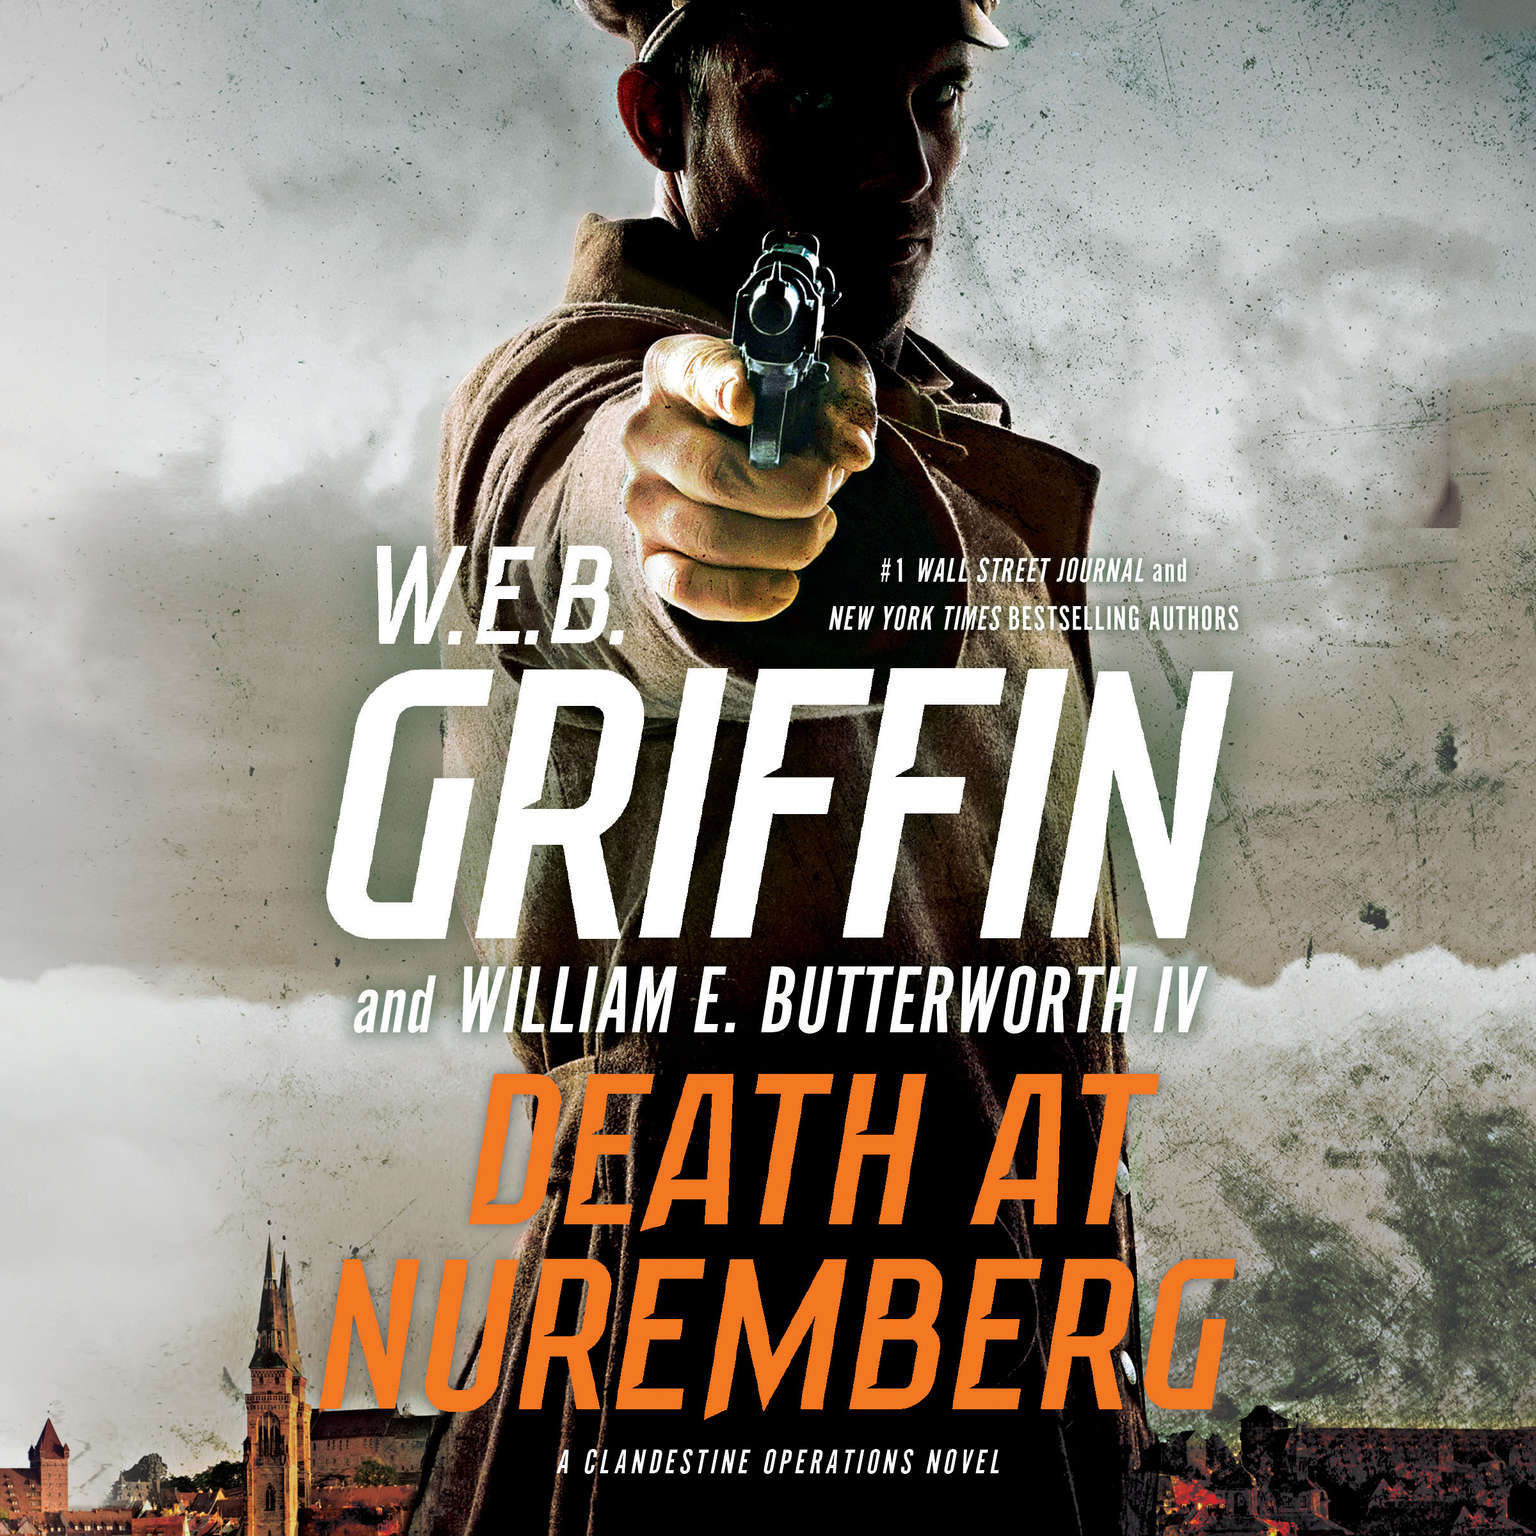 Death at Nuremberg Audiobook, by W. E. B. Griffin